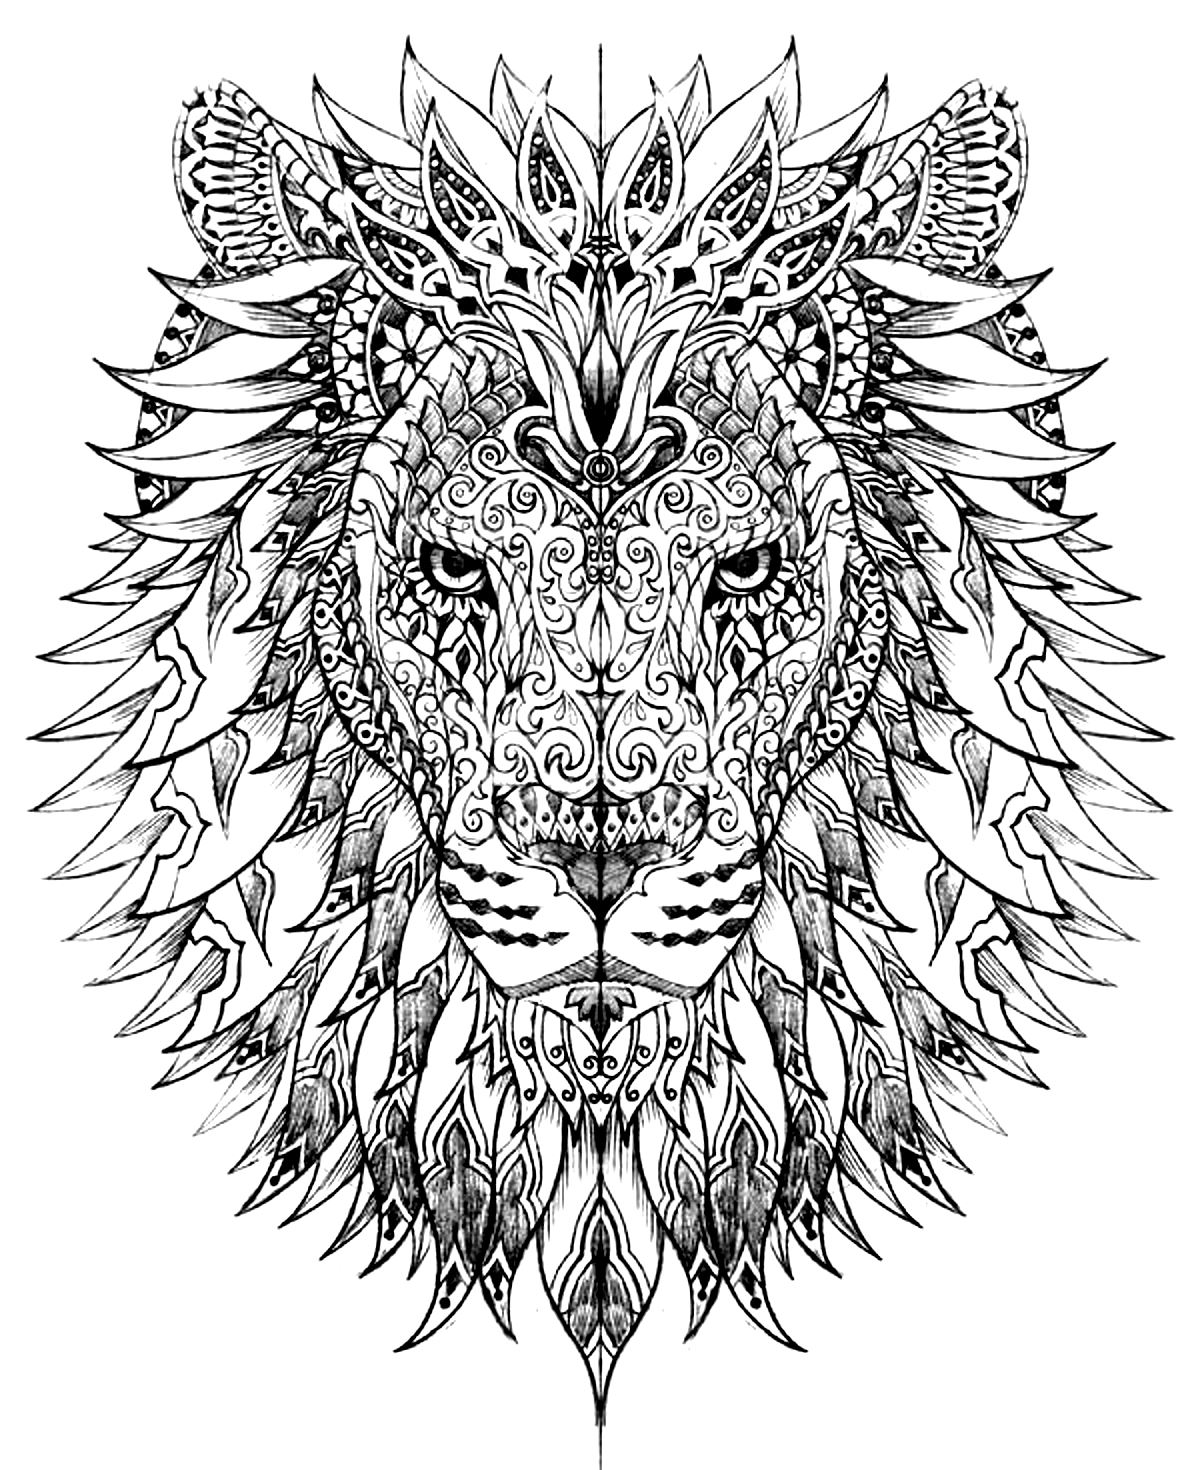 coloring pages for adults printable owl coloring pages for adults free detailed owl coloring printable coloring for pages adults